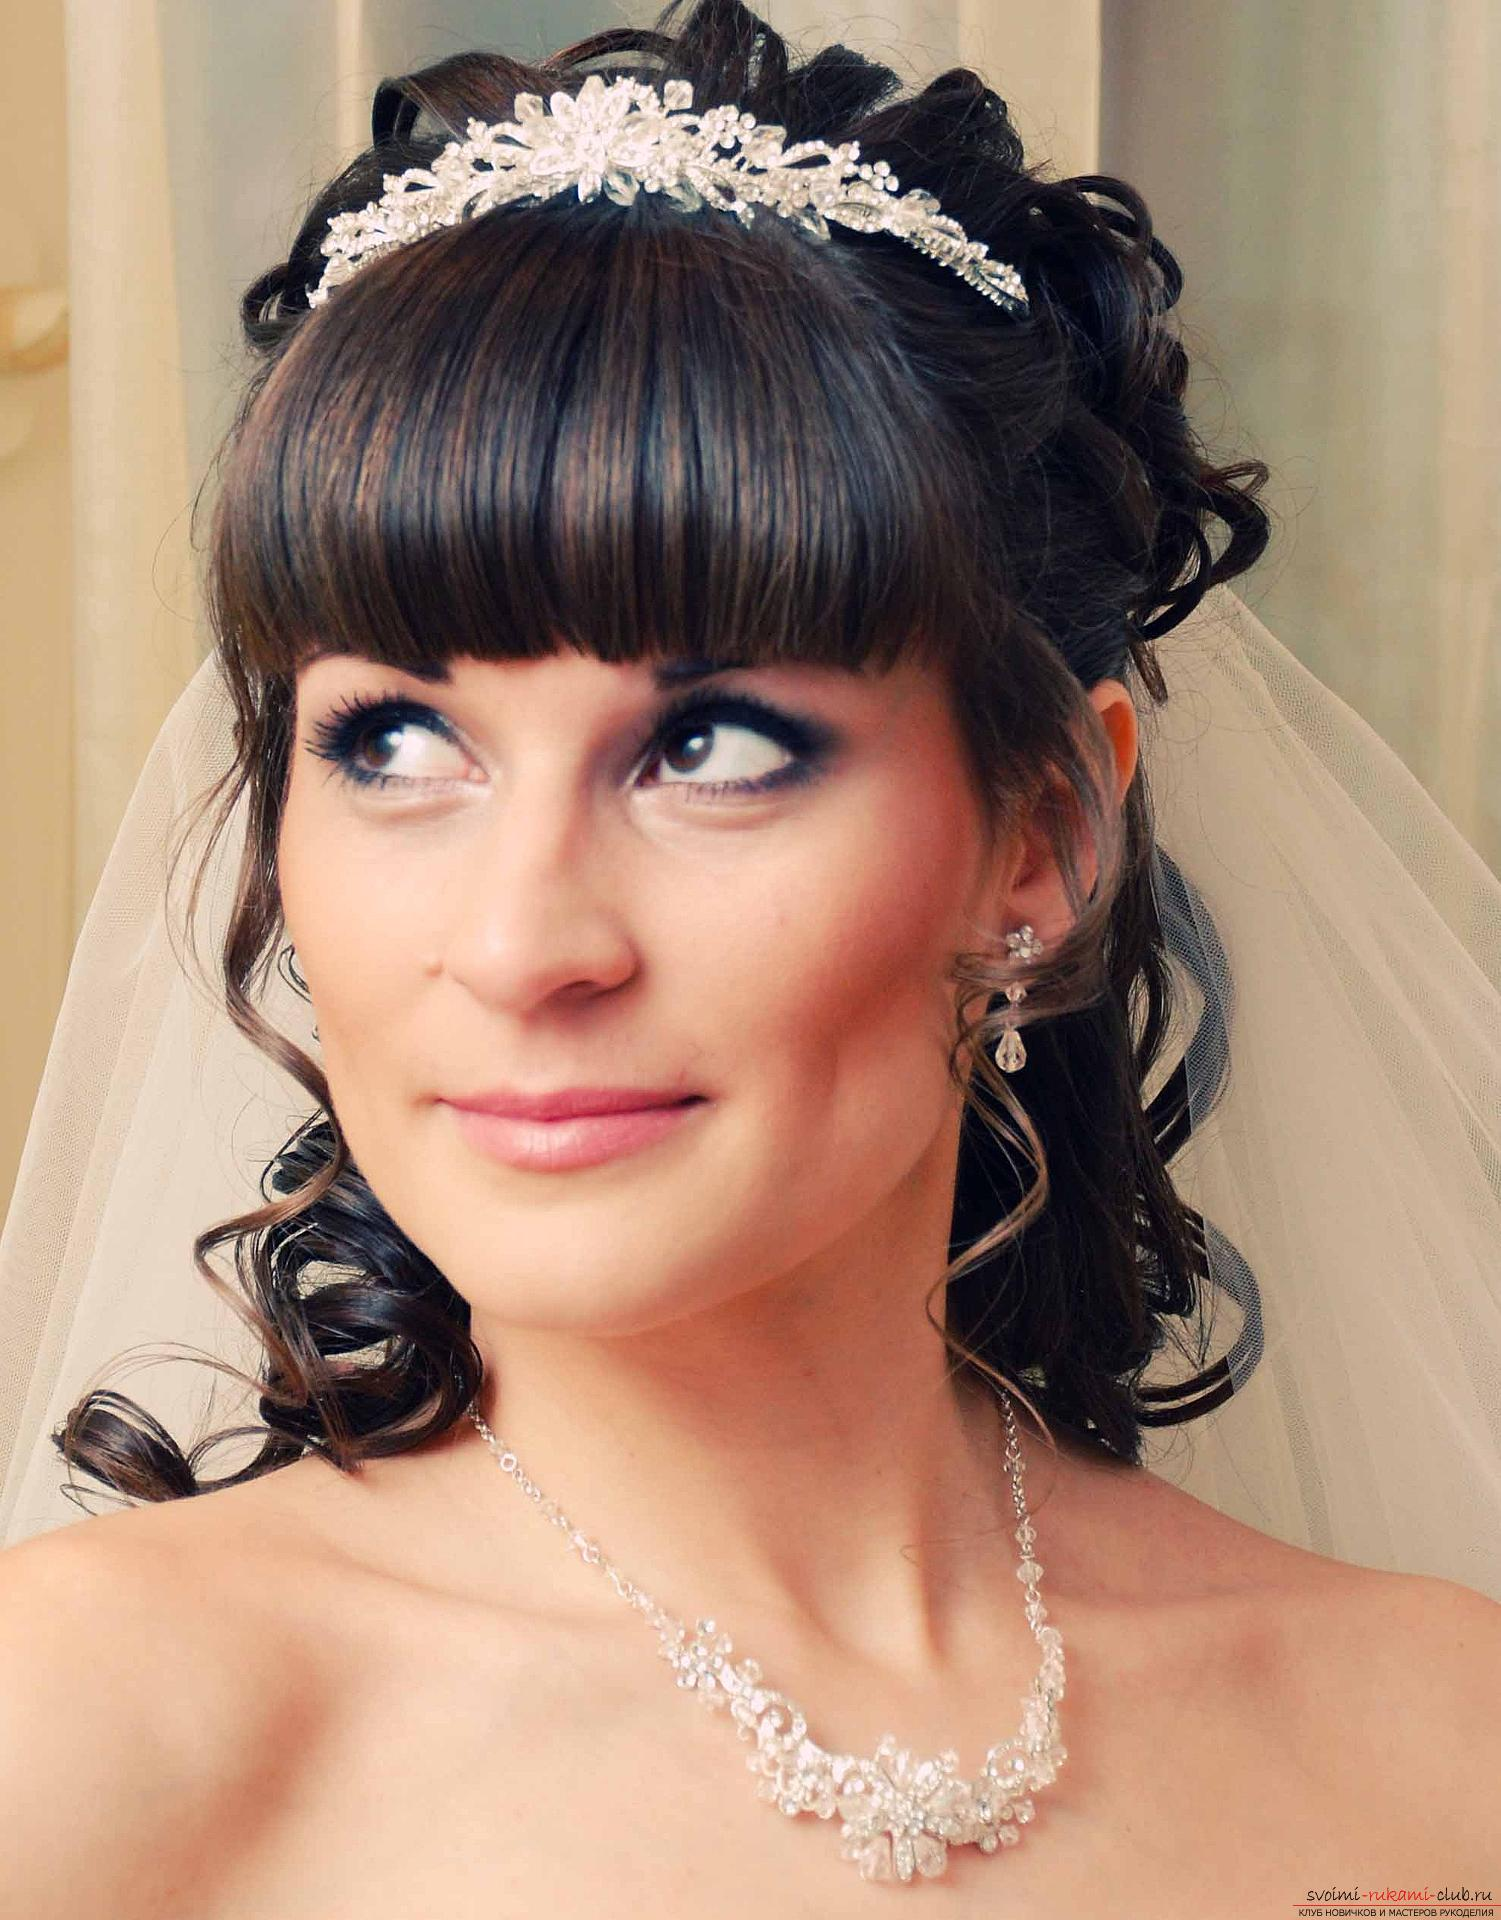 Hairstyles with bangs for the bride. Photo №4